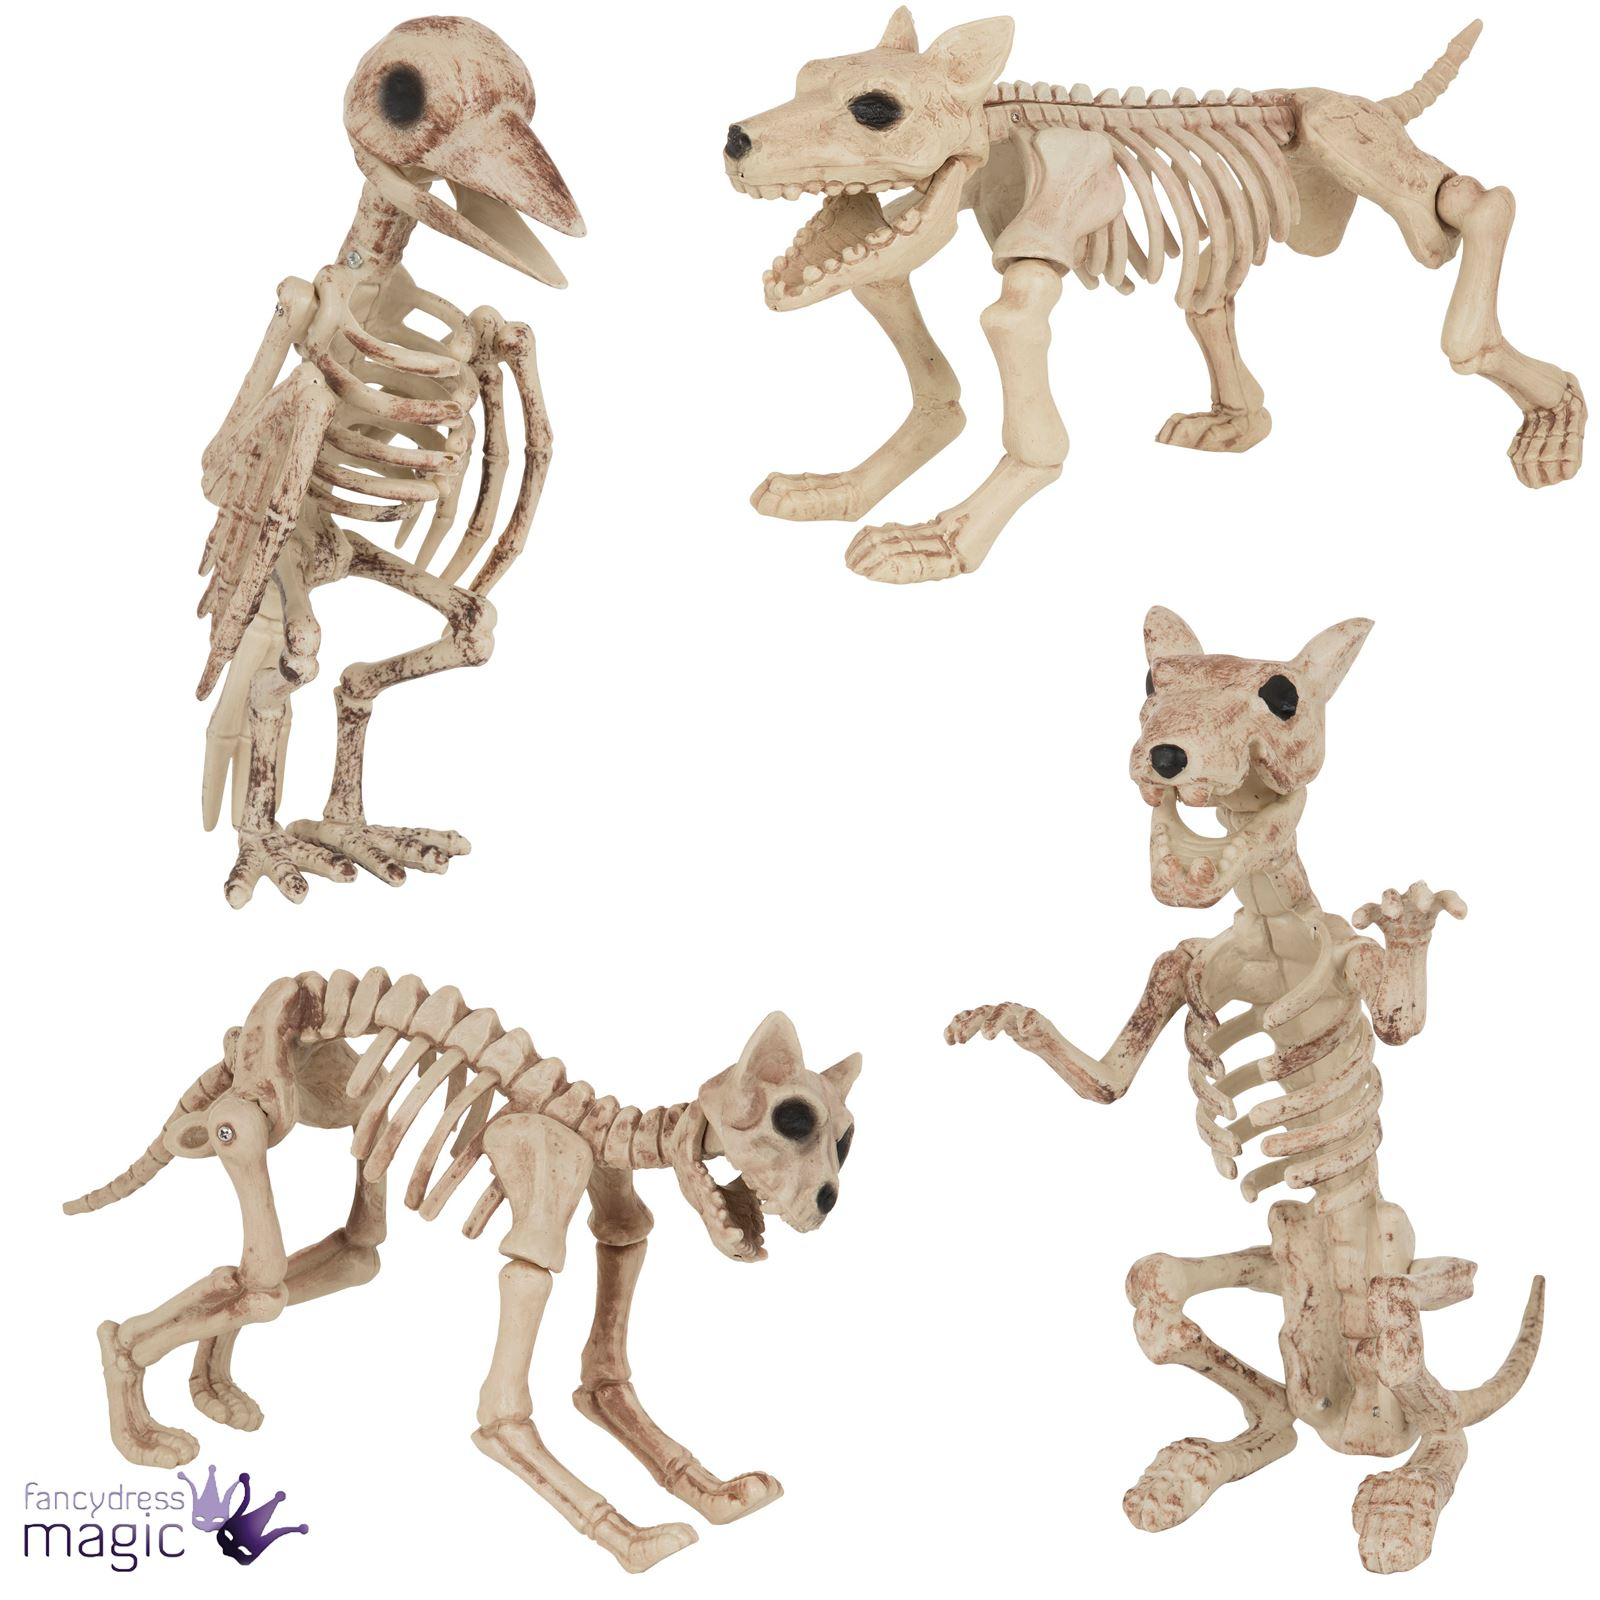 Monster High Ebay >> Halloween Dog Cat Rat Bird Skeleton Decoration Animal Bones Prop Shop Display | eBay